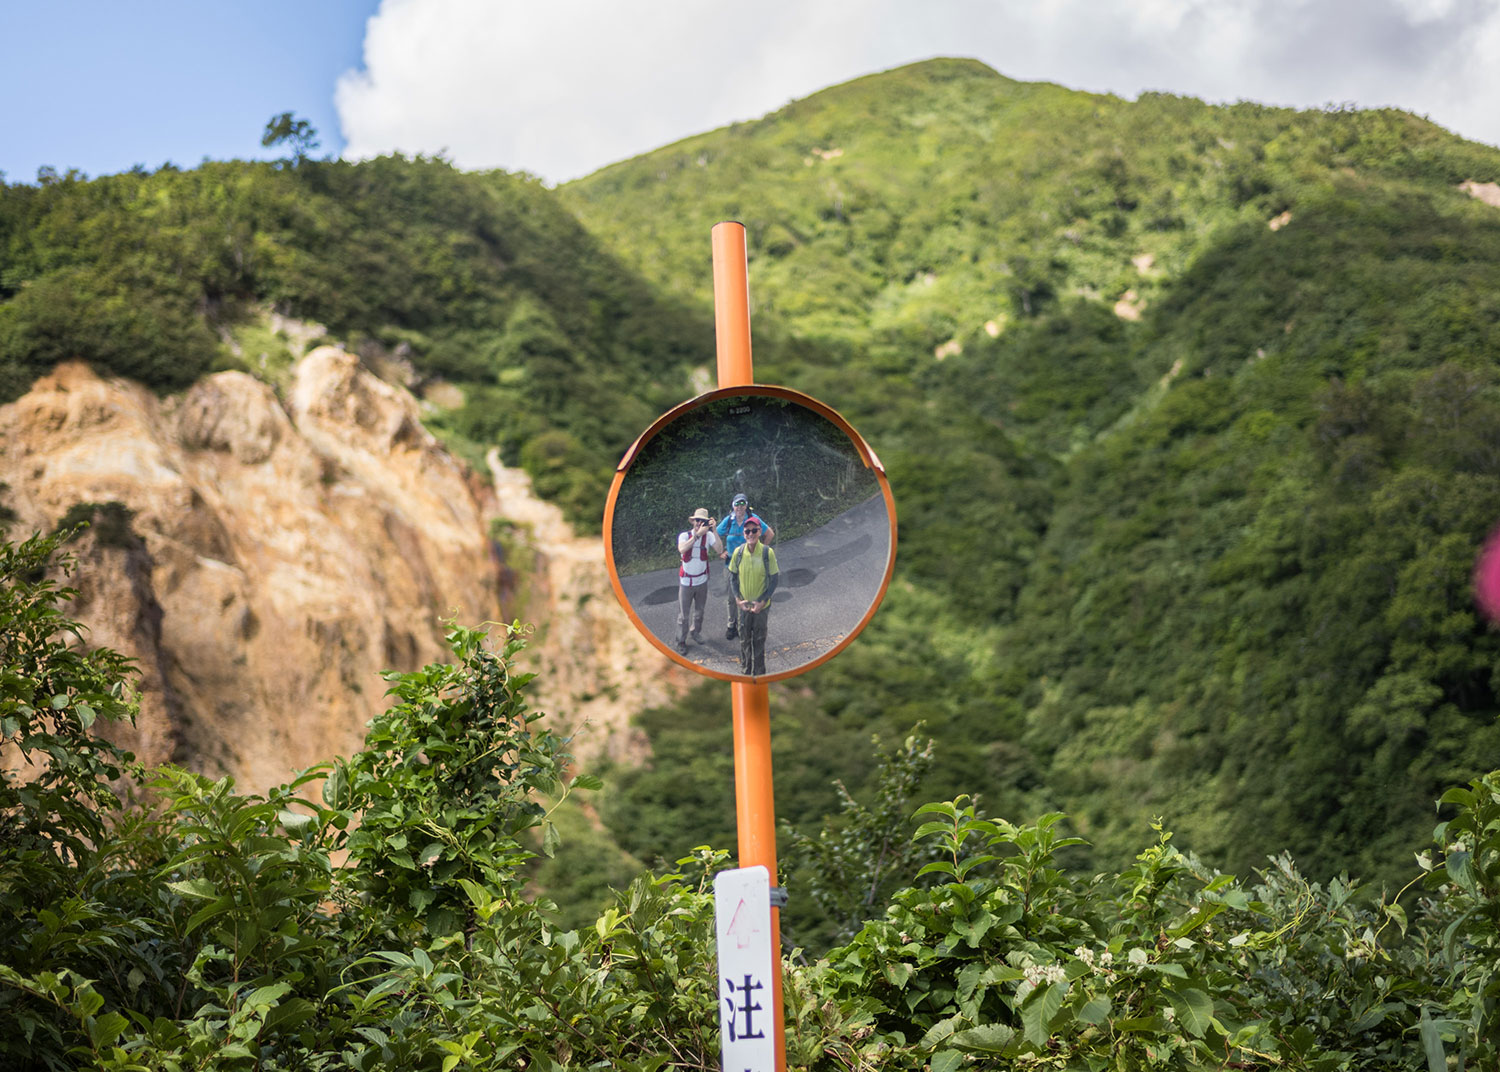 A hiking mirror on Mount Yuduno, Yamagata Japan